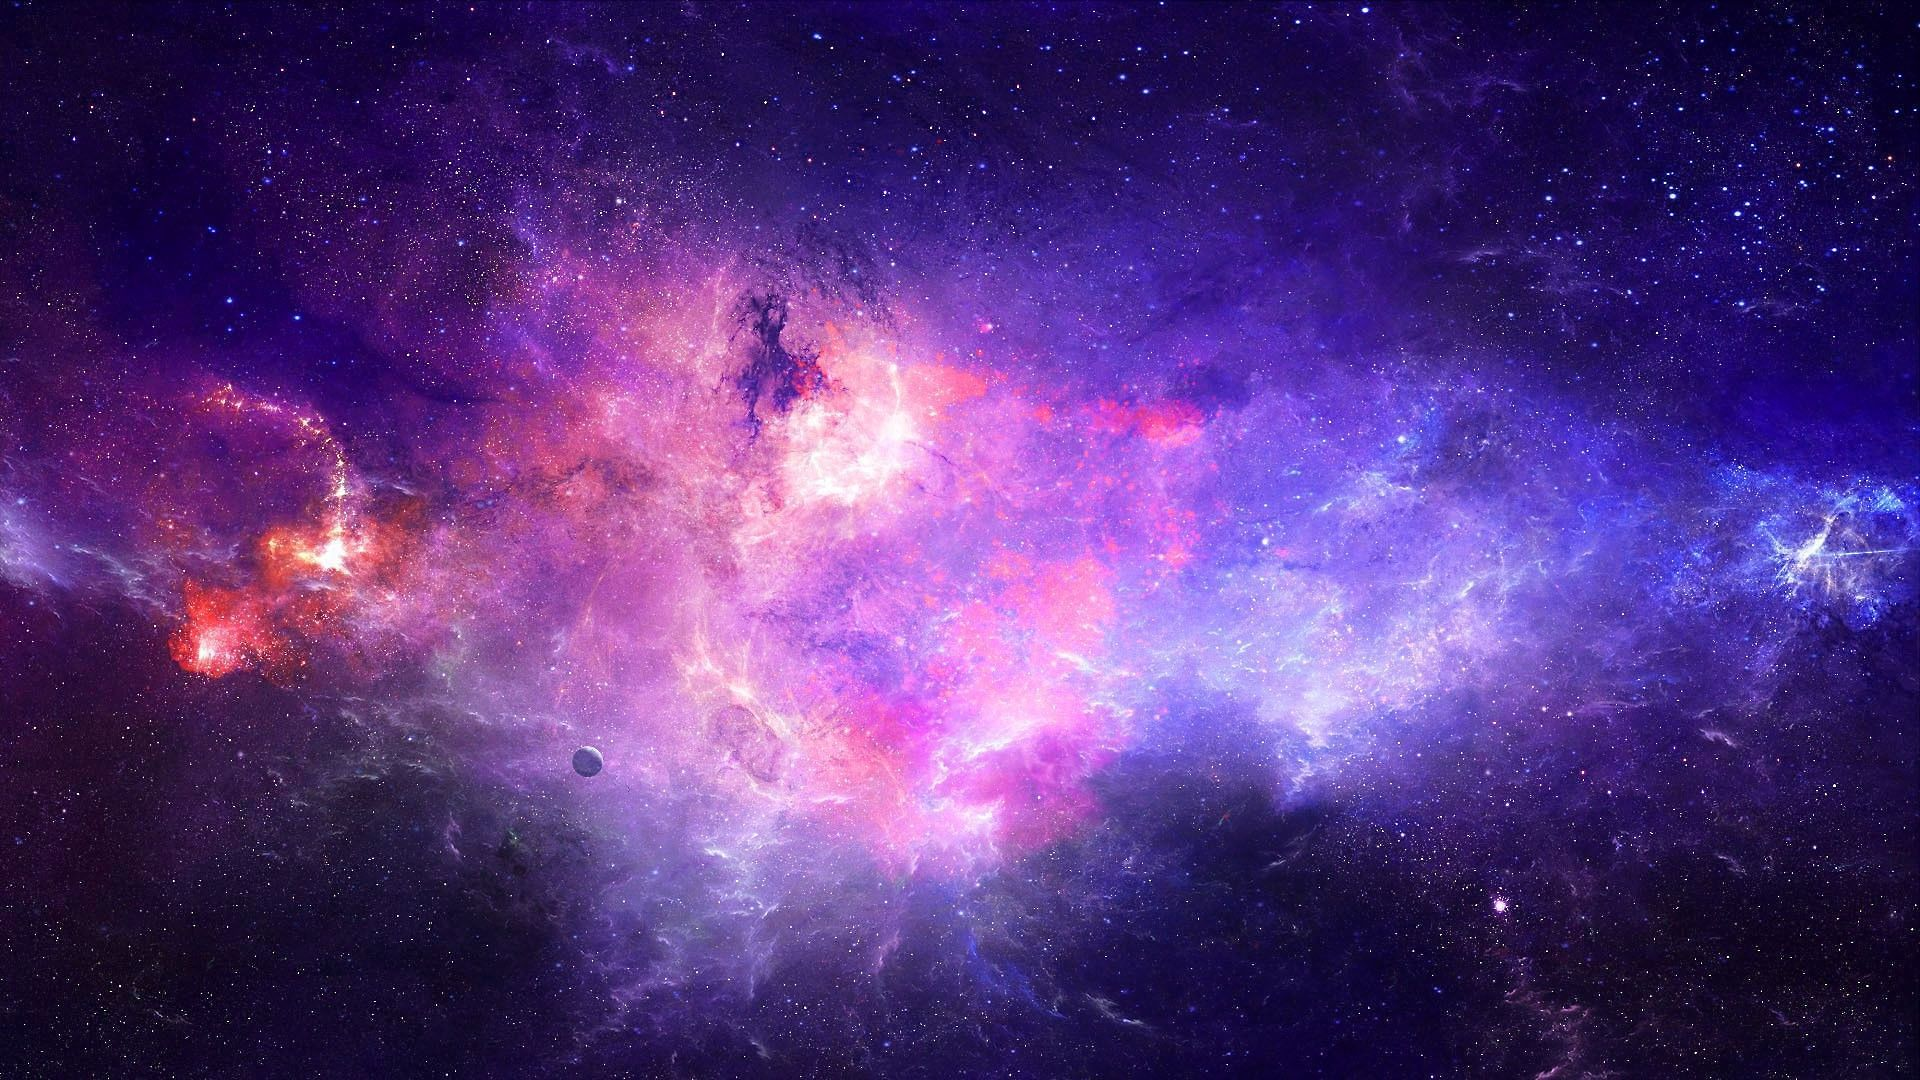 Download Wallpaper Horse Nebula - tumblr_static_65pp3qi6d0ws0cw04oo808c84_2048_v2  Best Photo Reference_42736.jpg